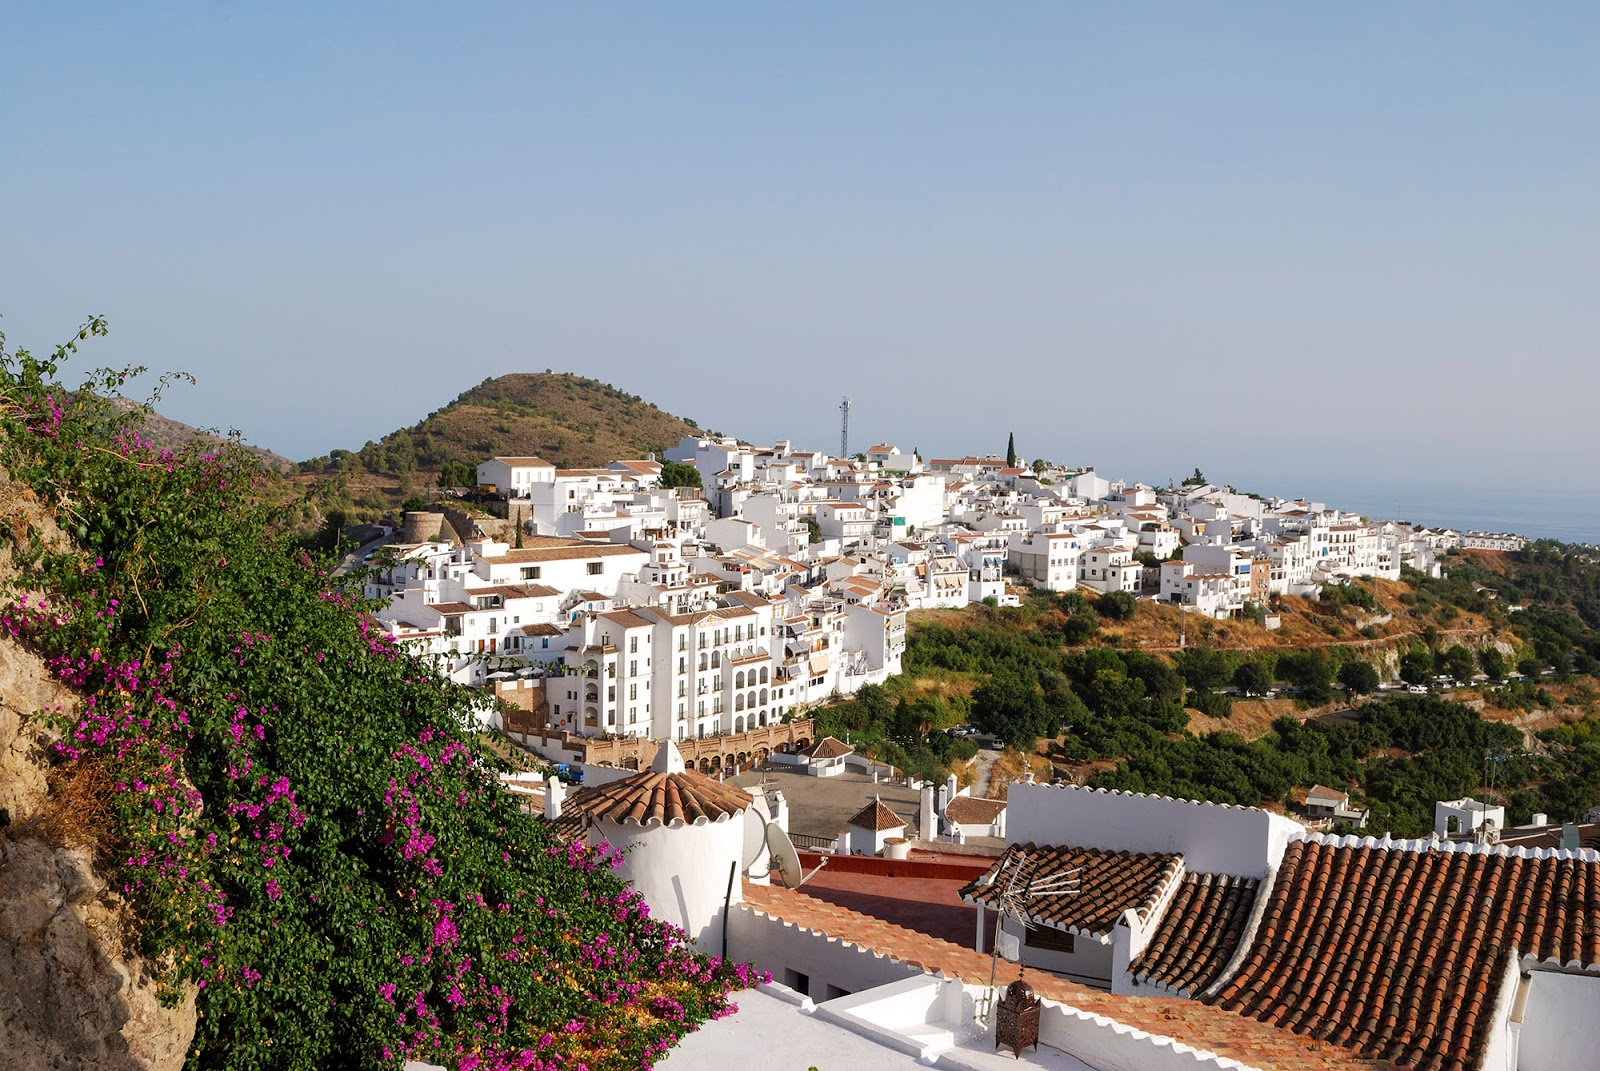 frigiliana pueblo bonito blanco malaga spain white village